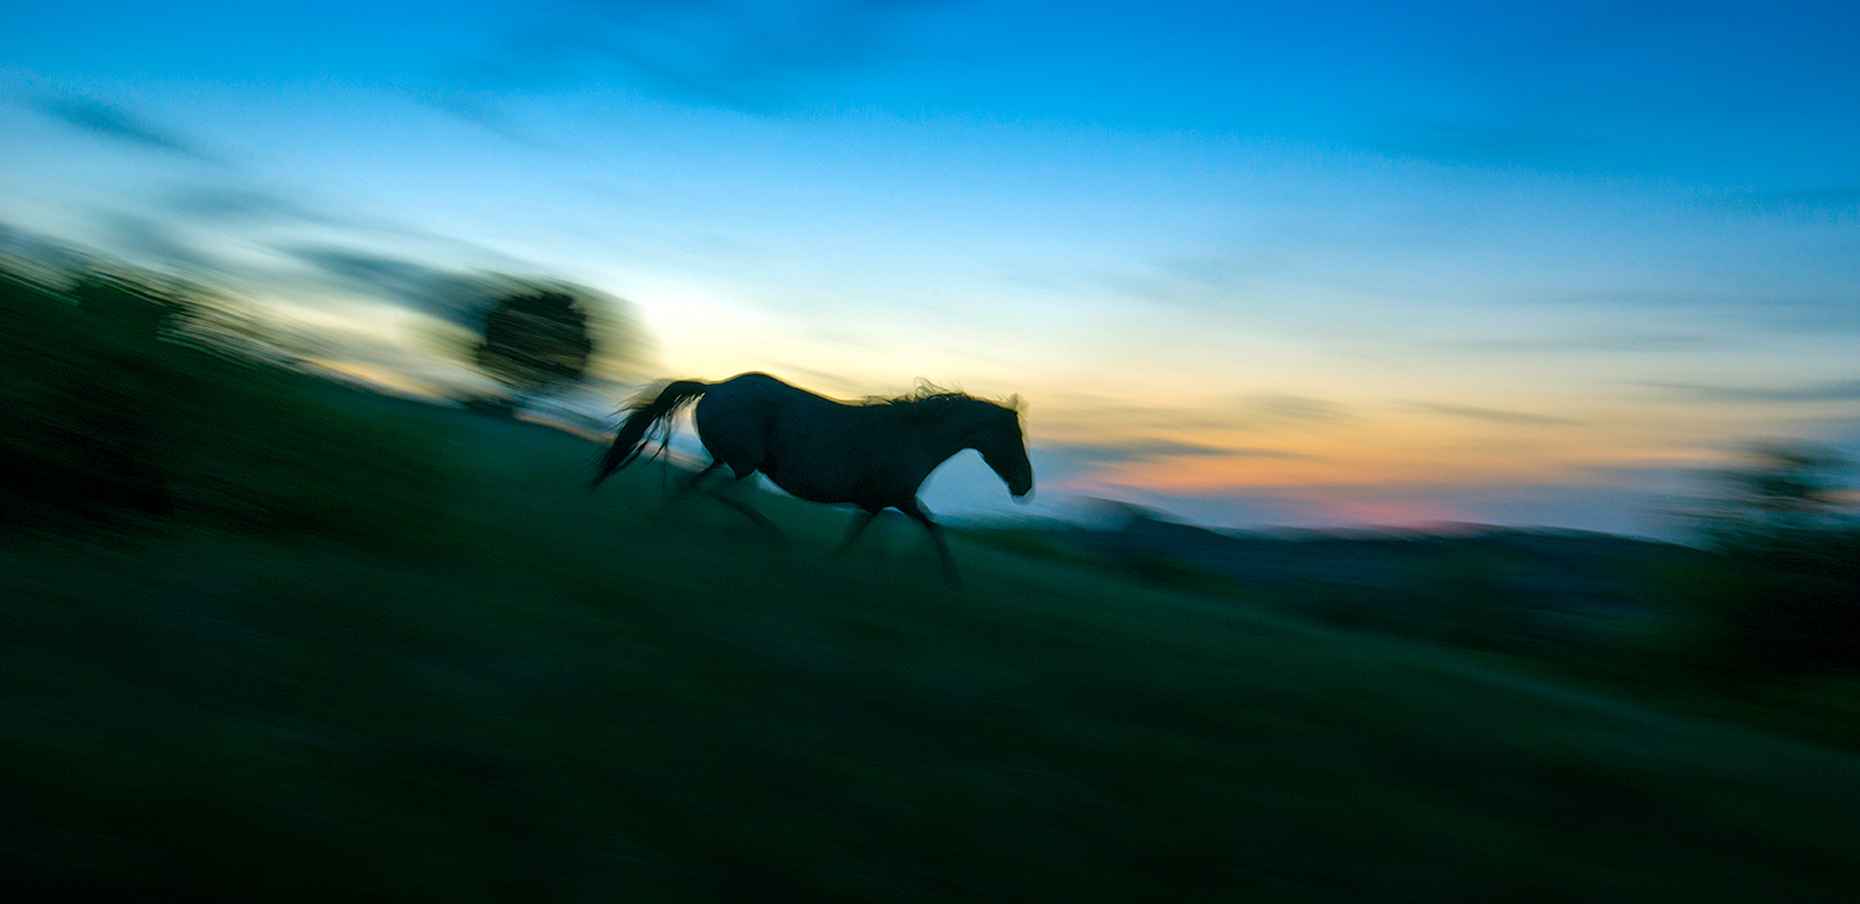 A photo of a wild horse in Theodore Roosevelt National Park taken by Fargo Photographer Dan Koeck